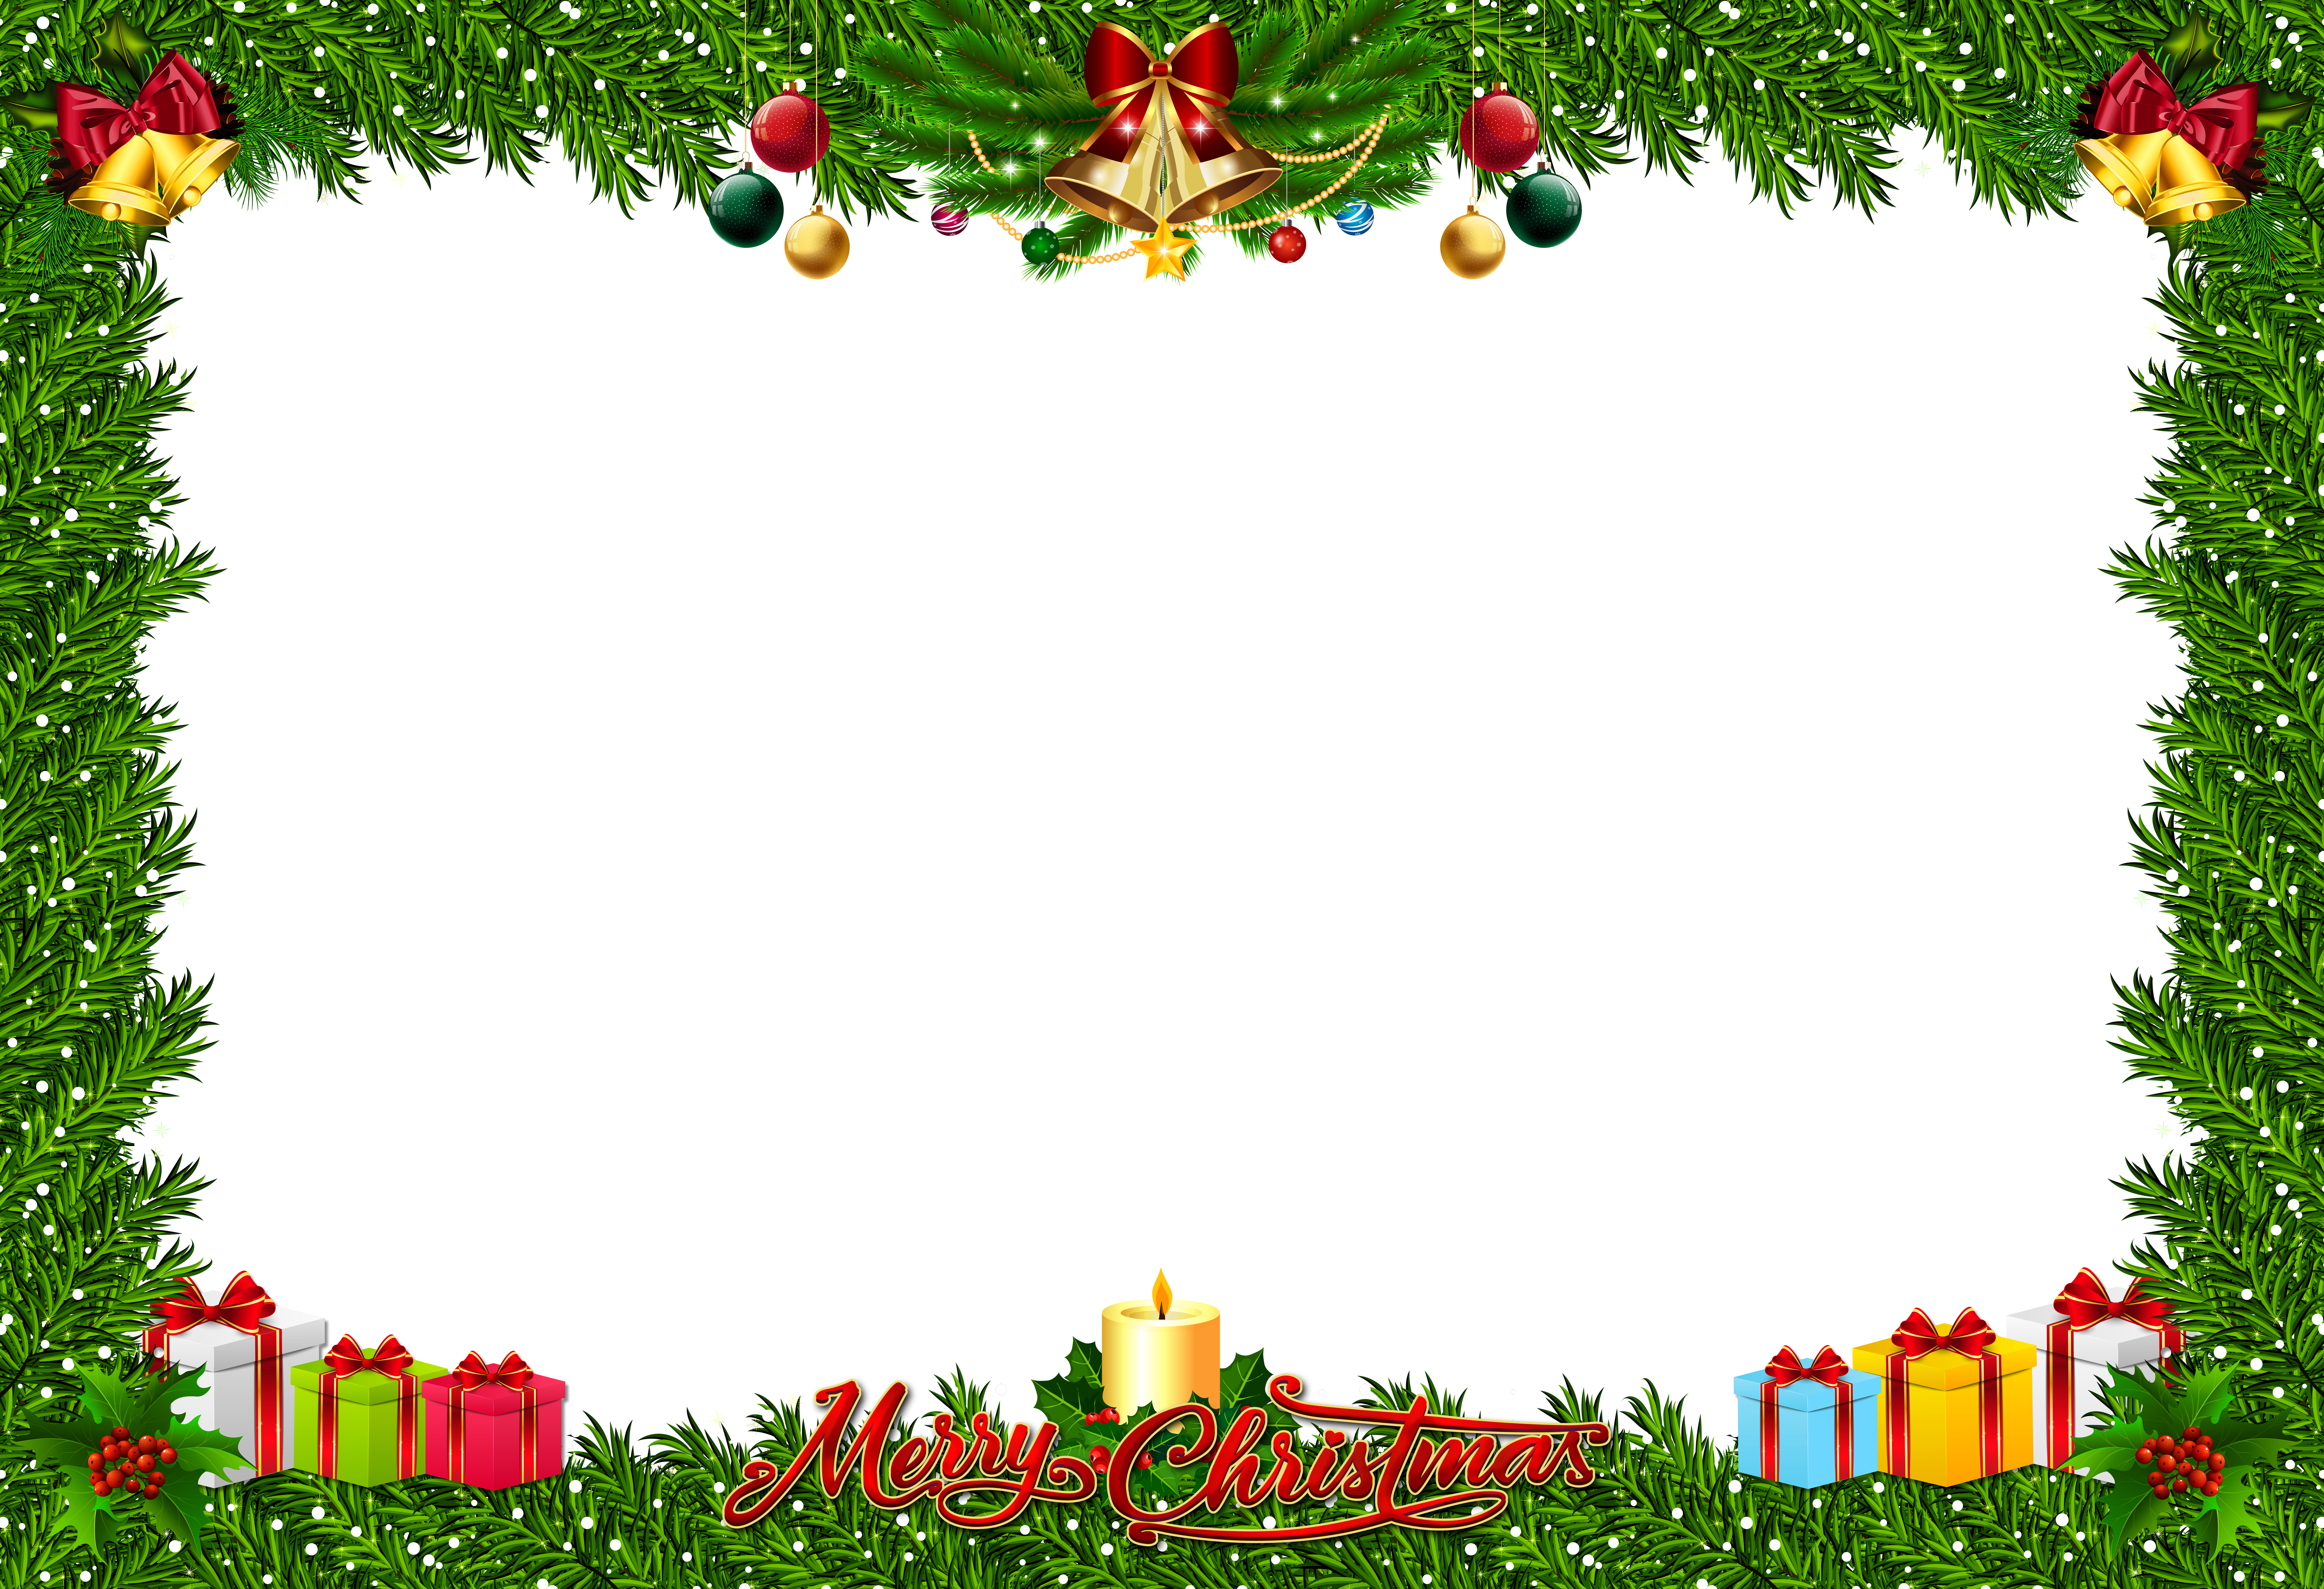 292 Christmas Frame free clipart.